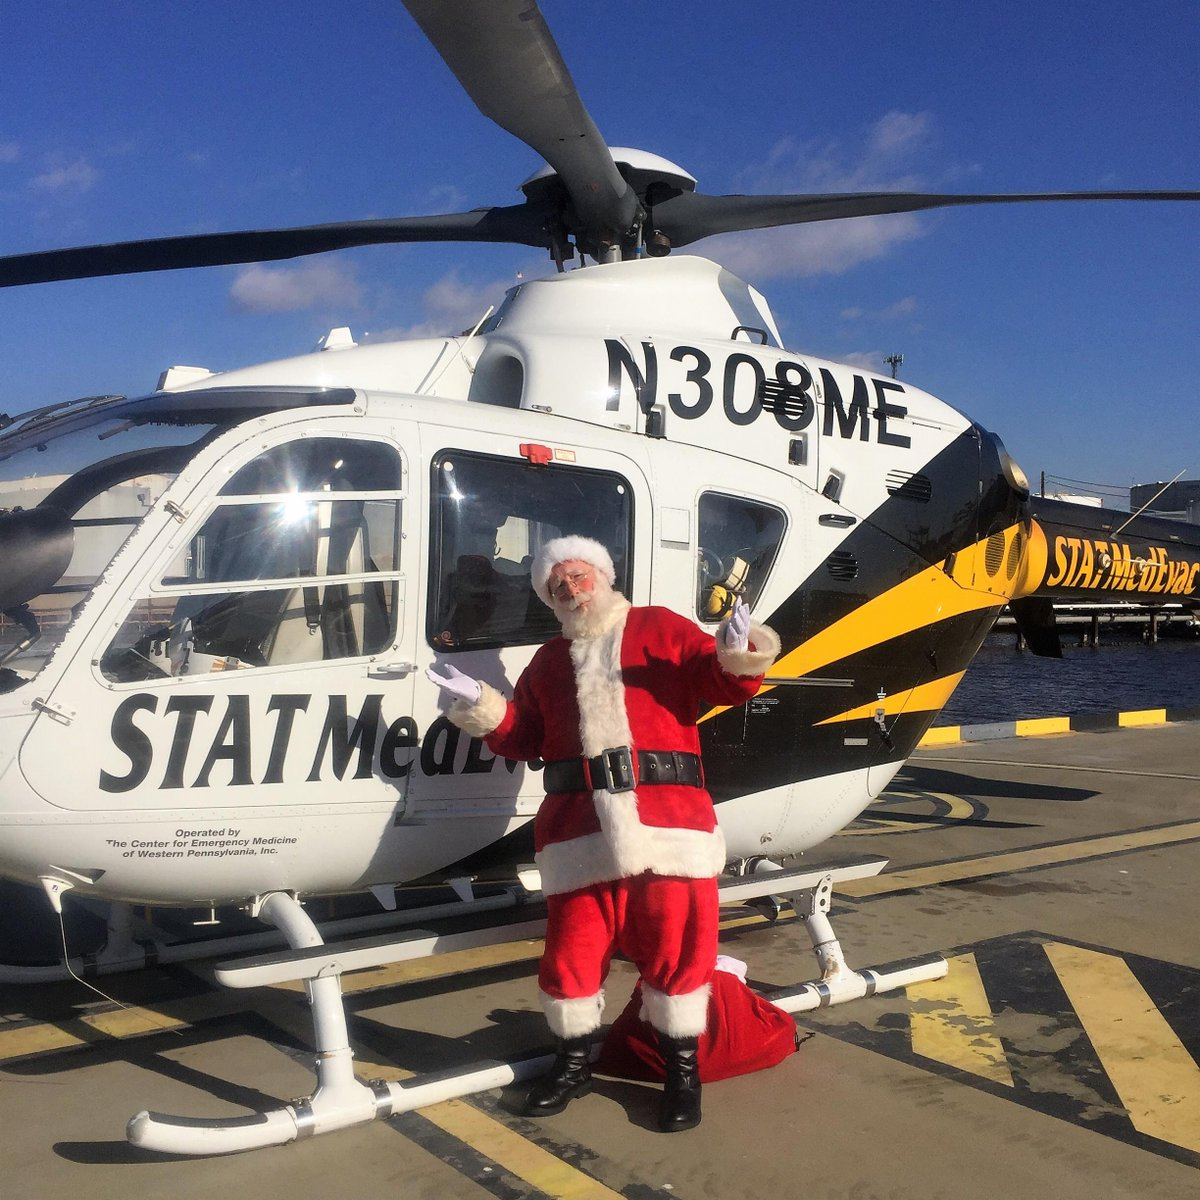 """c4c977a63c3 """"Up on the helipad A Helicopter lands Out jumps good ol  Santa Man"""